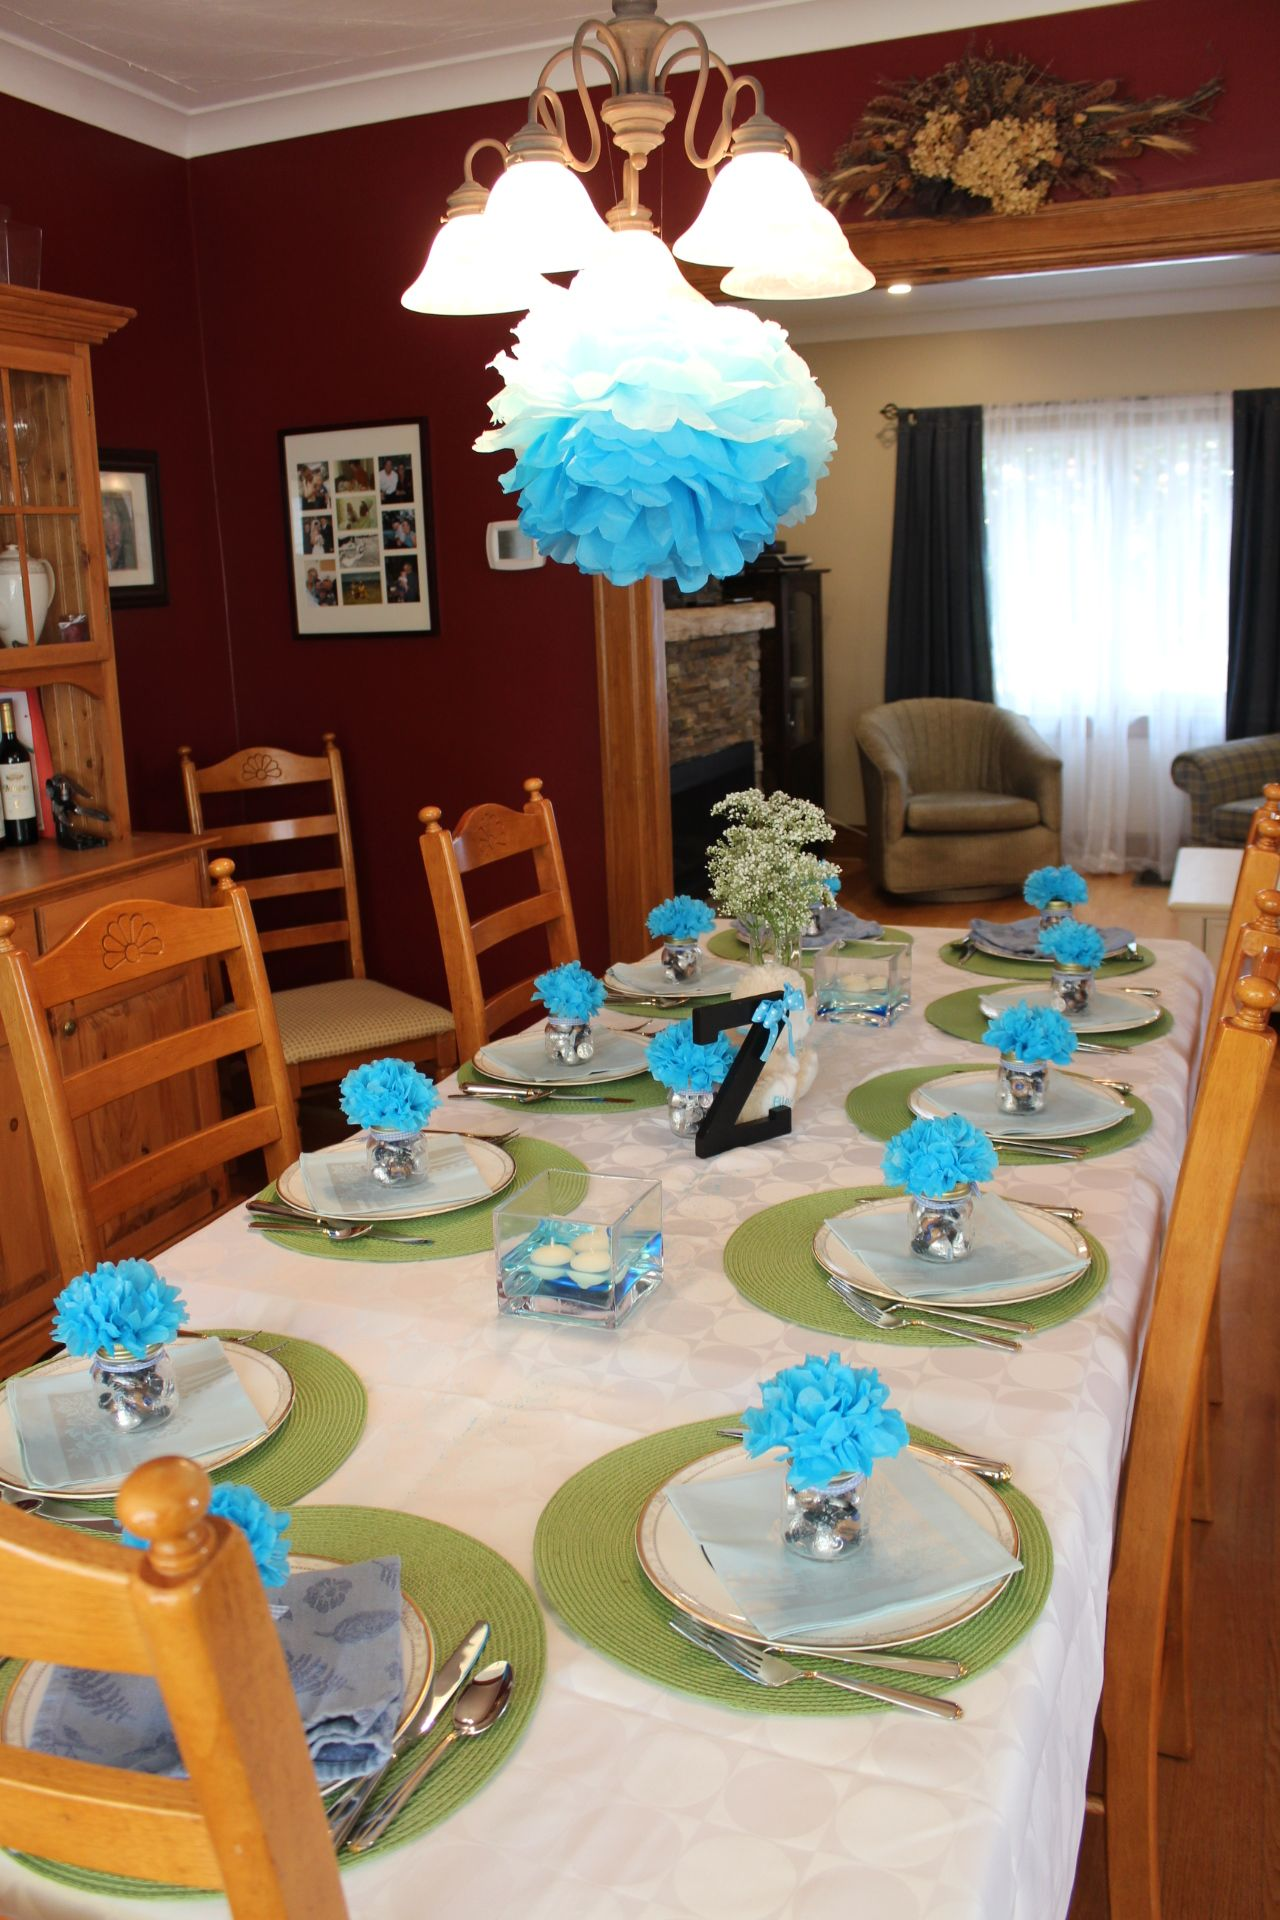 Simple, Elegant Table Setting For Baby Boyu0027s Christening Or Birthday Dinner  Party. Tissue Paper